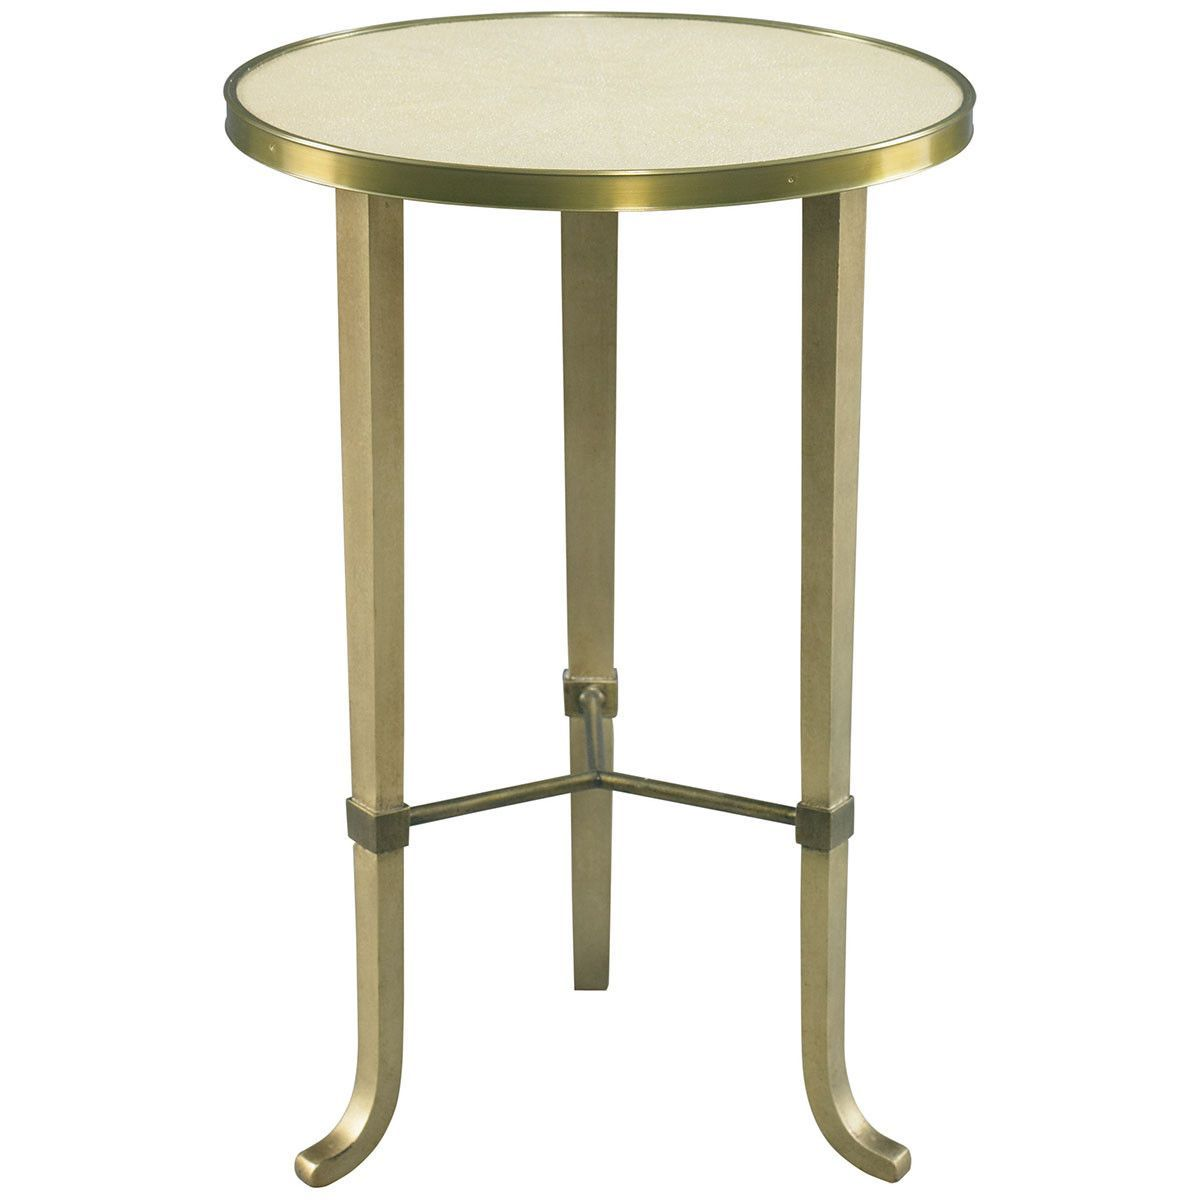 lillian hanson accent table white pedestal gray coffee and end tables make your own barn door kitchen modern rustic reclaimed wood pub plans round glass dining gold side coca cola